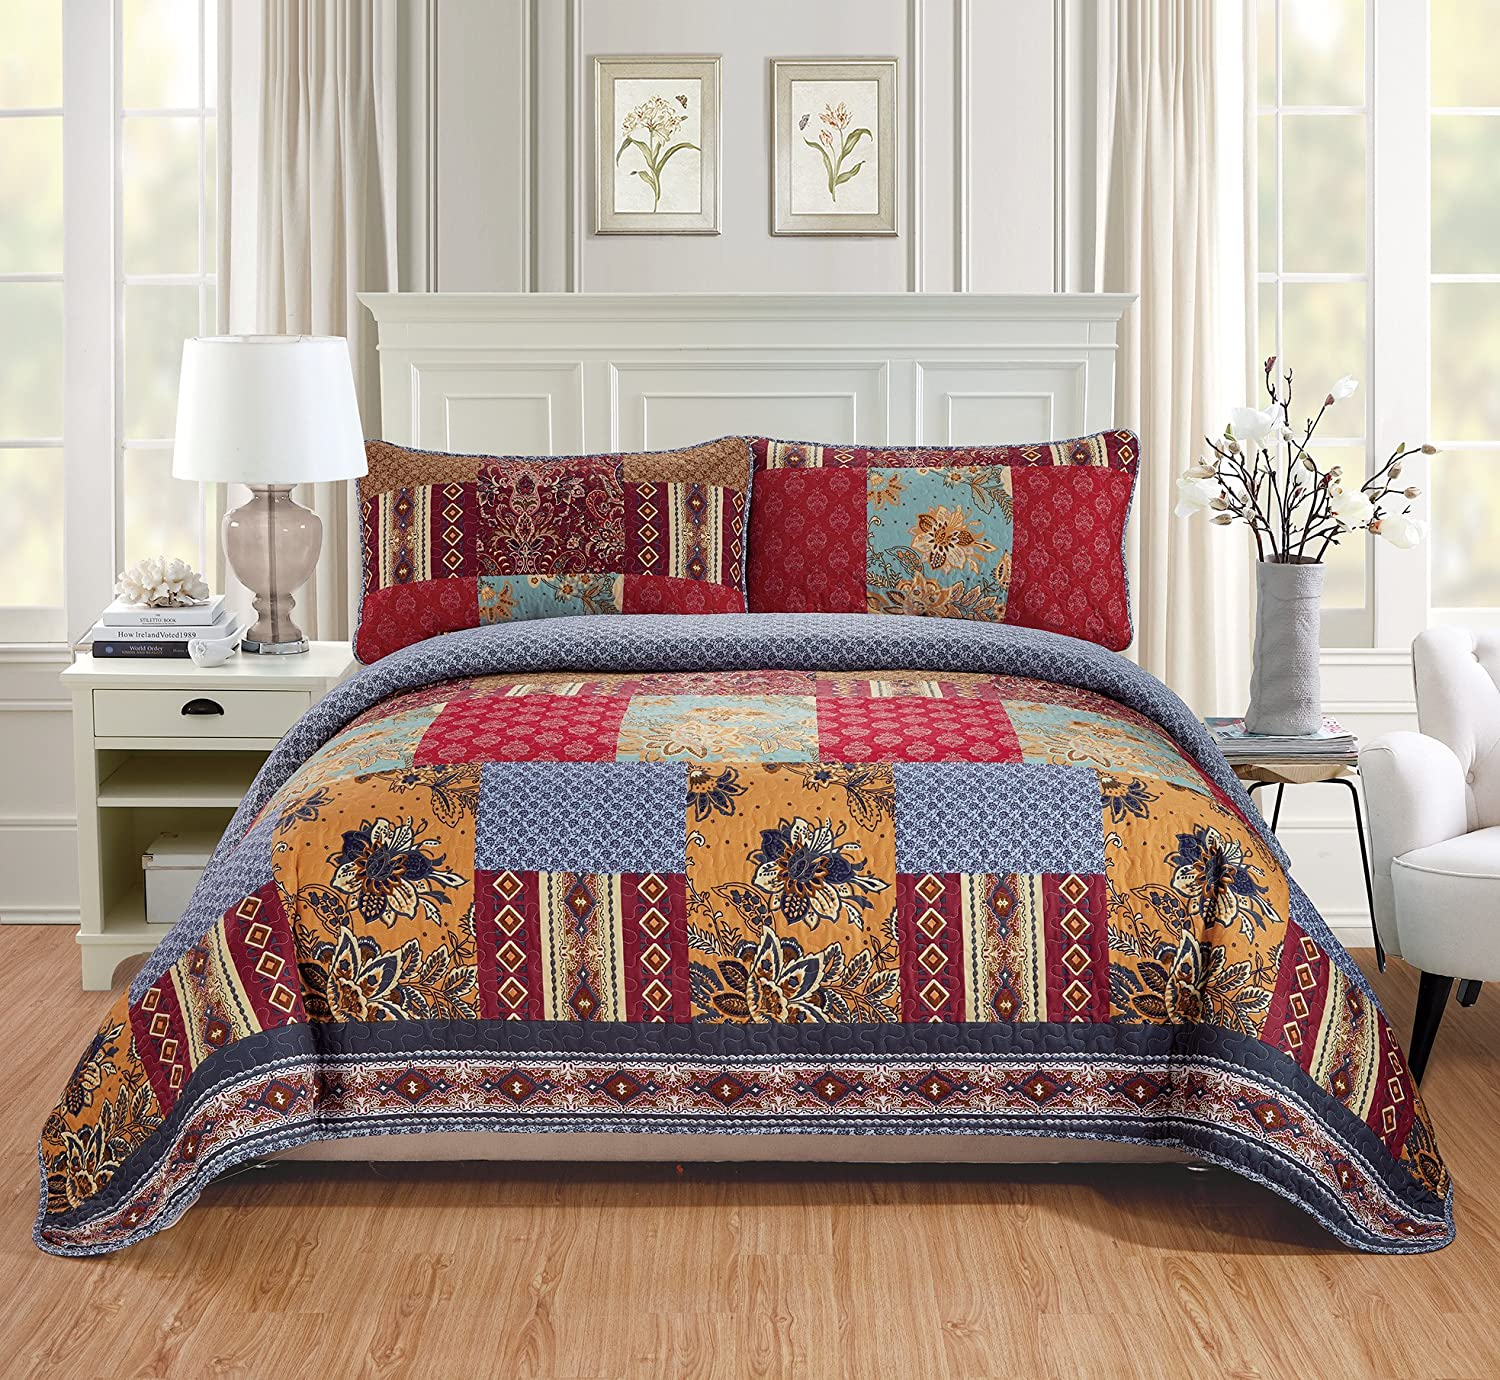 MK Home 2pc Twin/Twin Extra Long Over Size Quilted Coverlet Bedspread Set Patchwork Floral Flower Squares Red Navy Blue Ivory Burgundy New # Verona